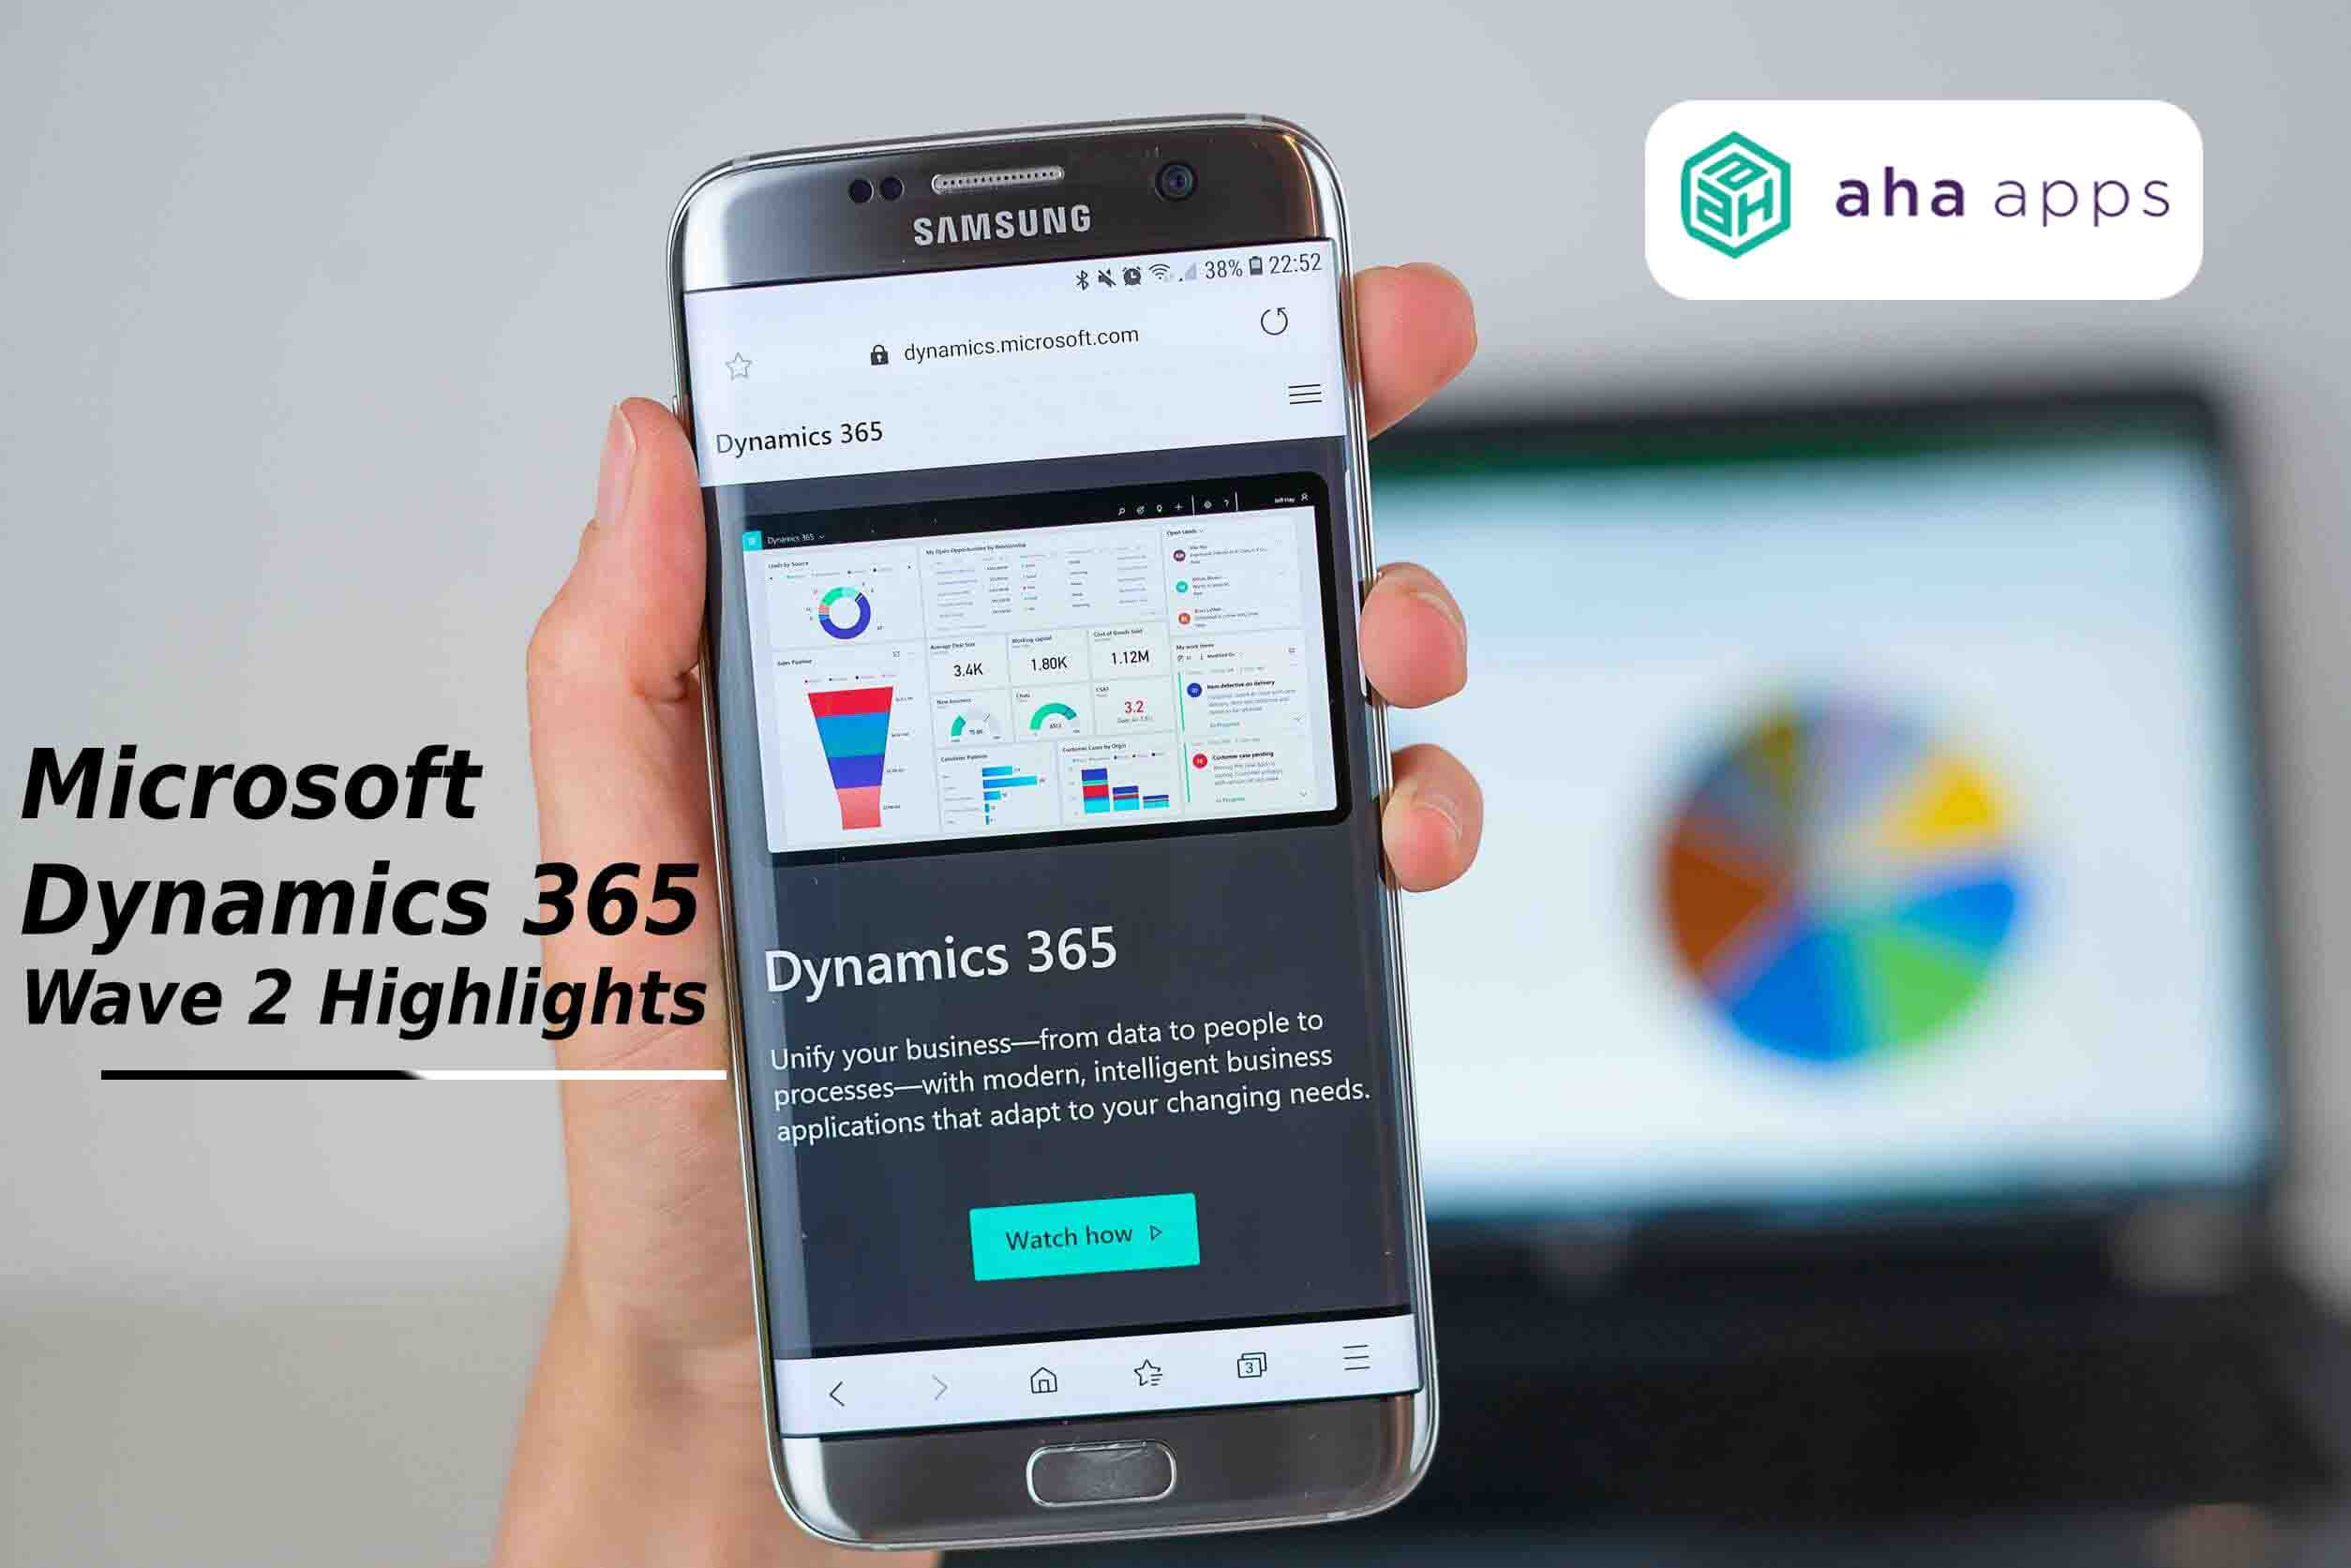 Microsoft Dynamics 365 Wave 2 highlights - AhaApps